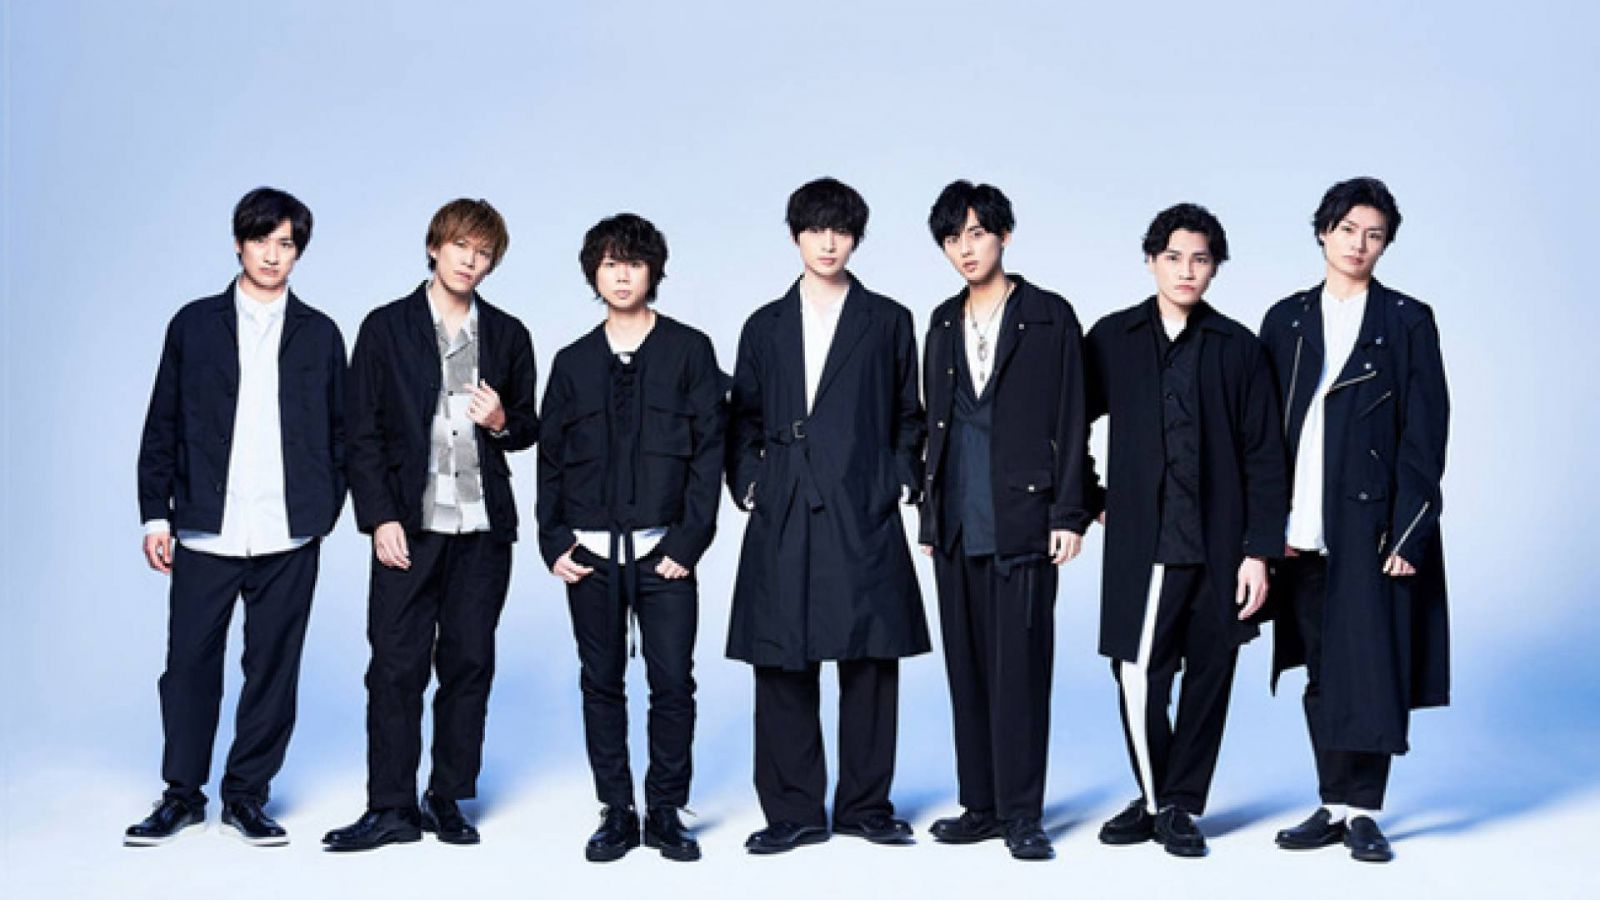 New Album from Kis-My-Ft2 © avex trax. All rights reserved.